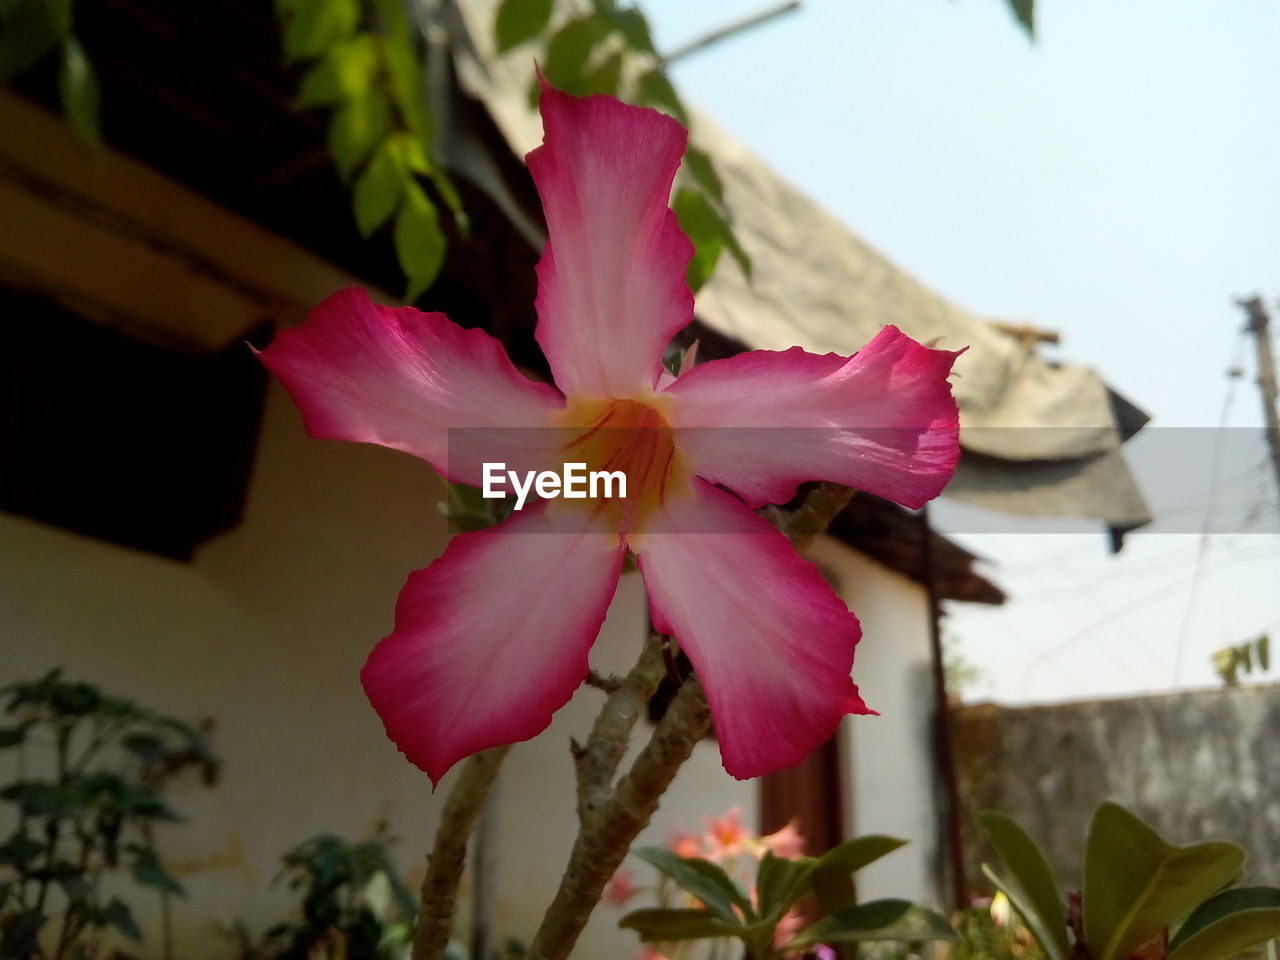 flower, pink color, petal, fragility, flower head, beauty in nature, growth, nature, no people, close-up, focus on foreground, day, freshness, outdoors, plant, blooming, hibiscus, building exterior, periwinkle